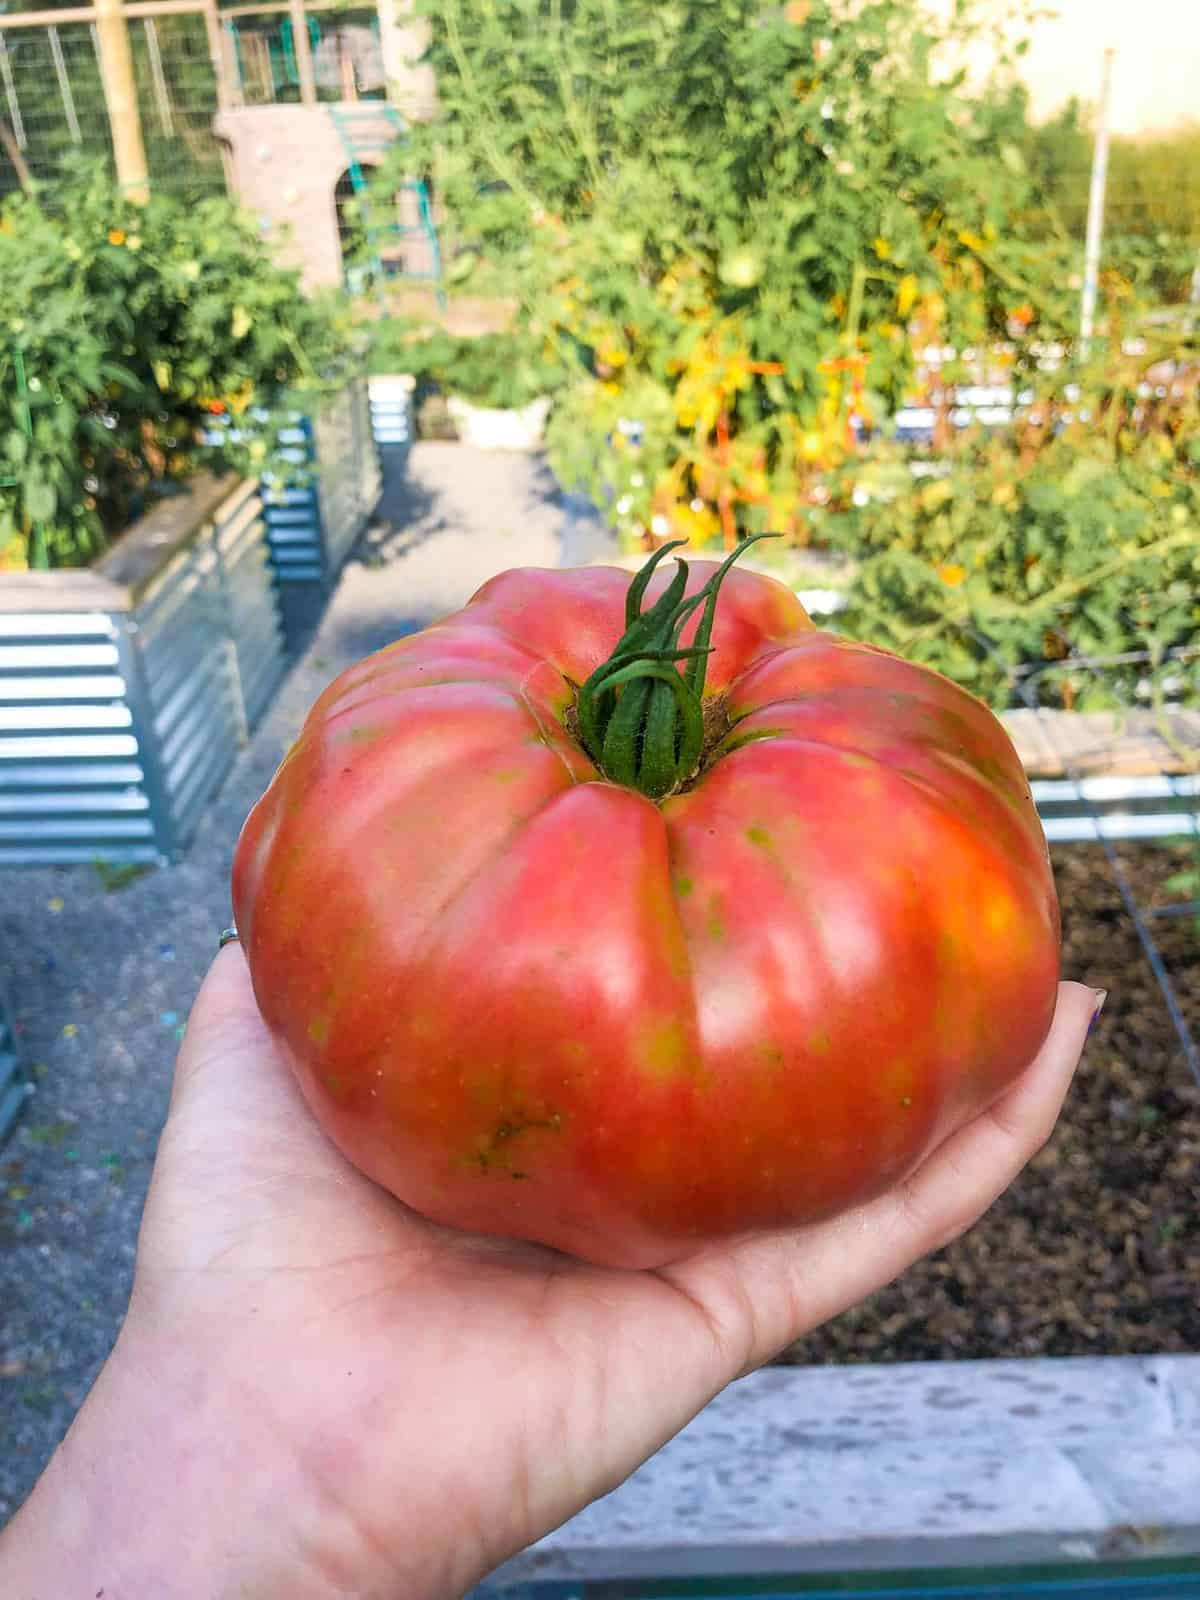 A hand holds a German pink tomato